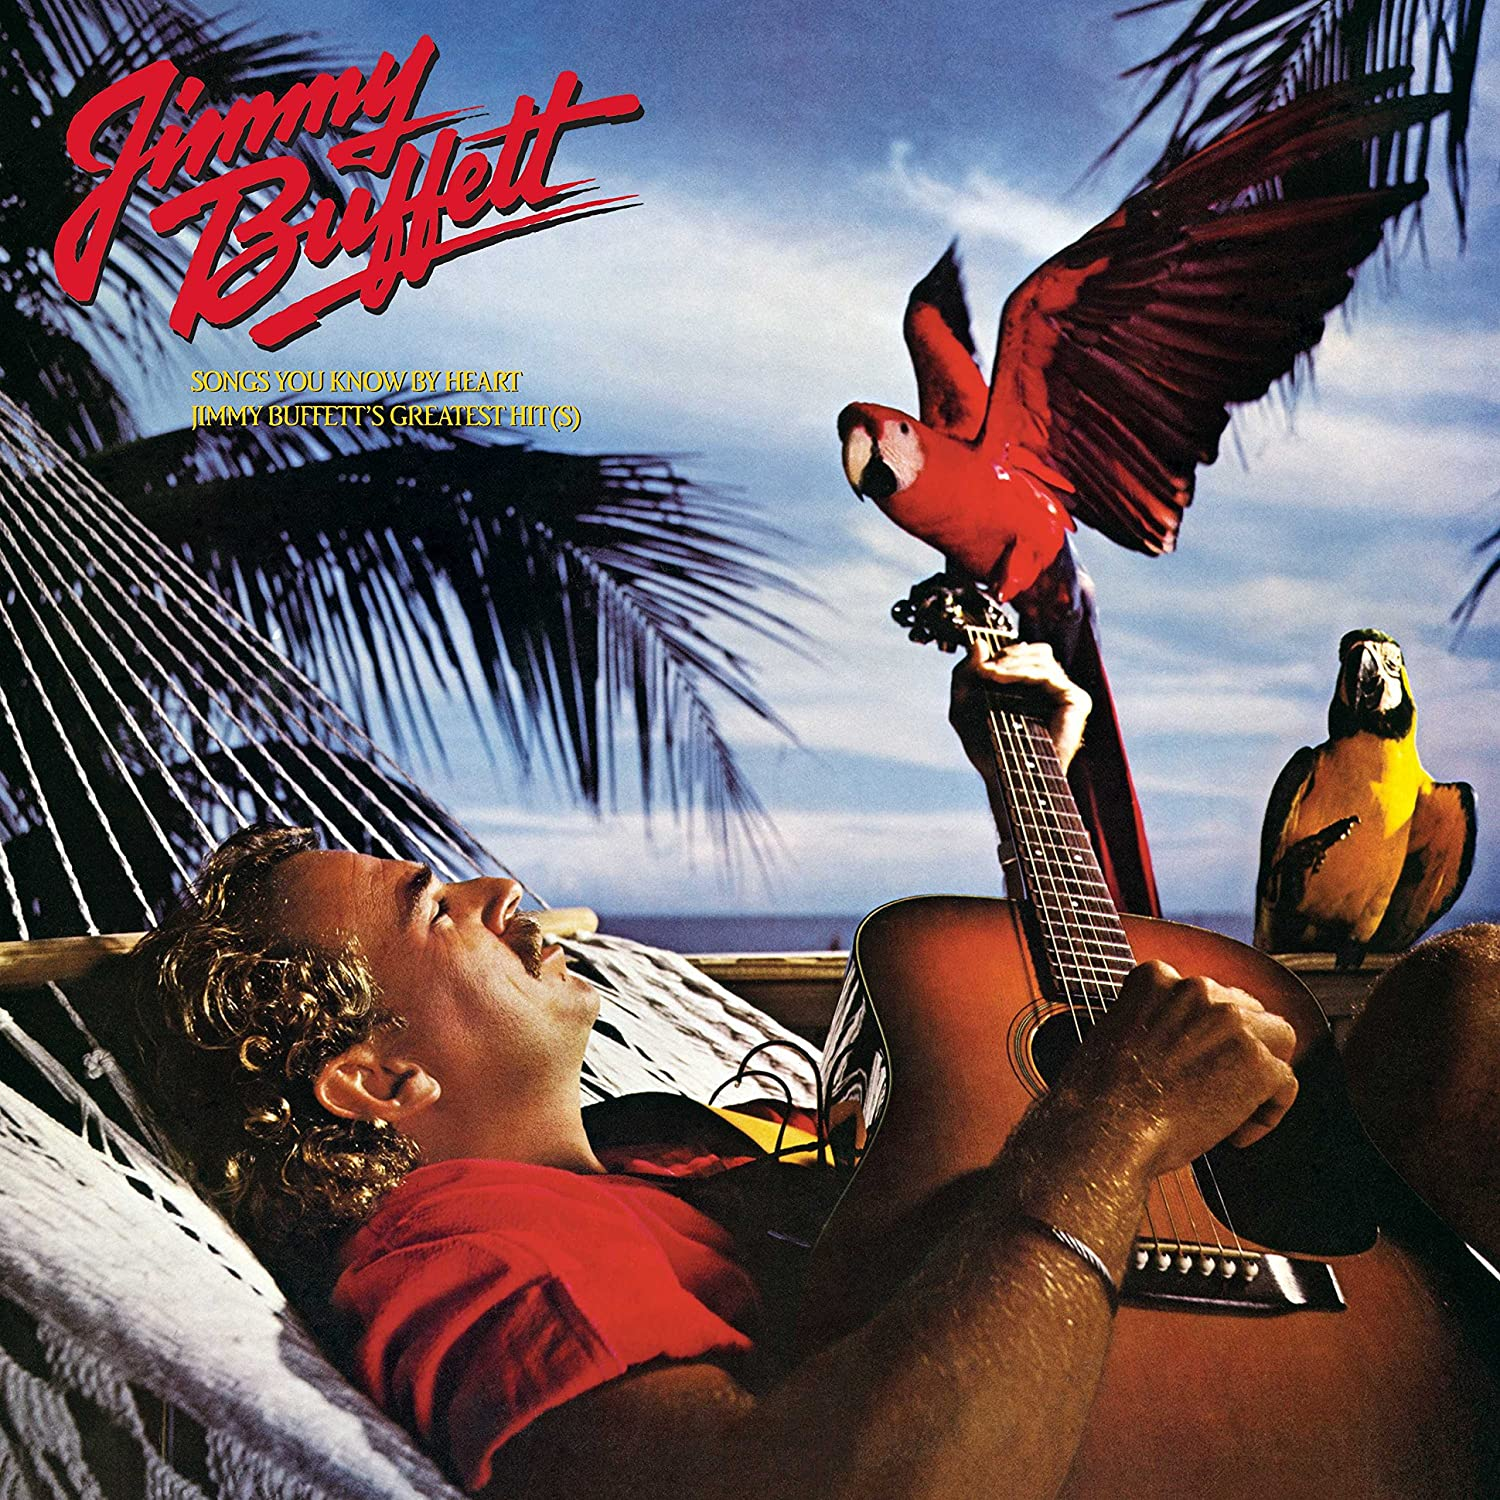 Jimmy Buffett - Songs You Know By Heart [LP] - Amazon.com Music